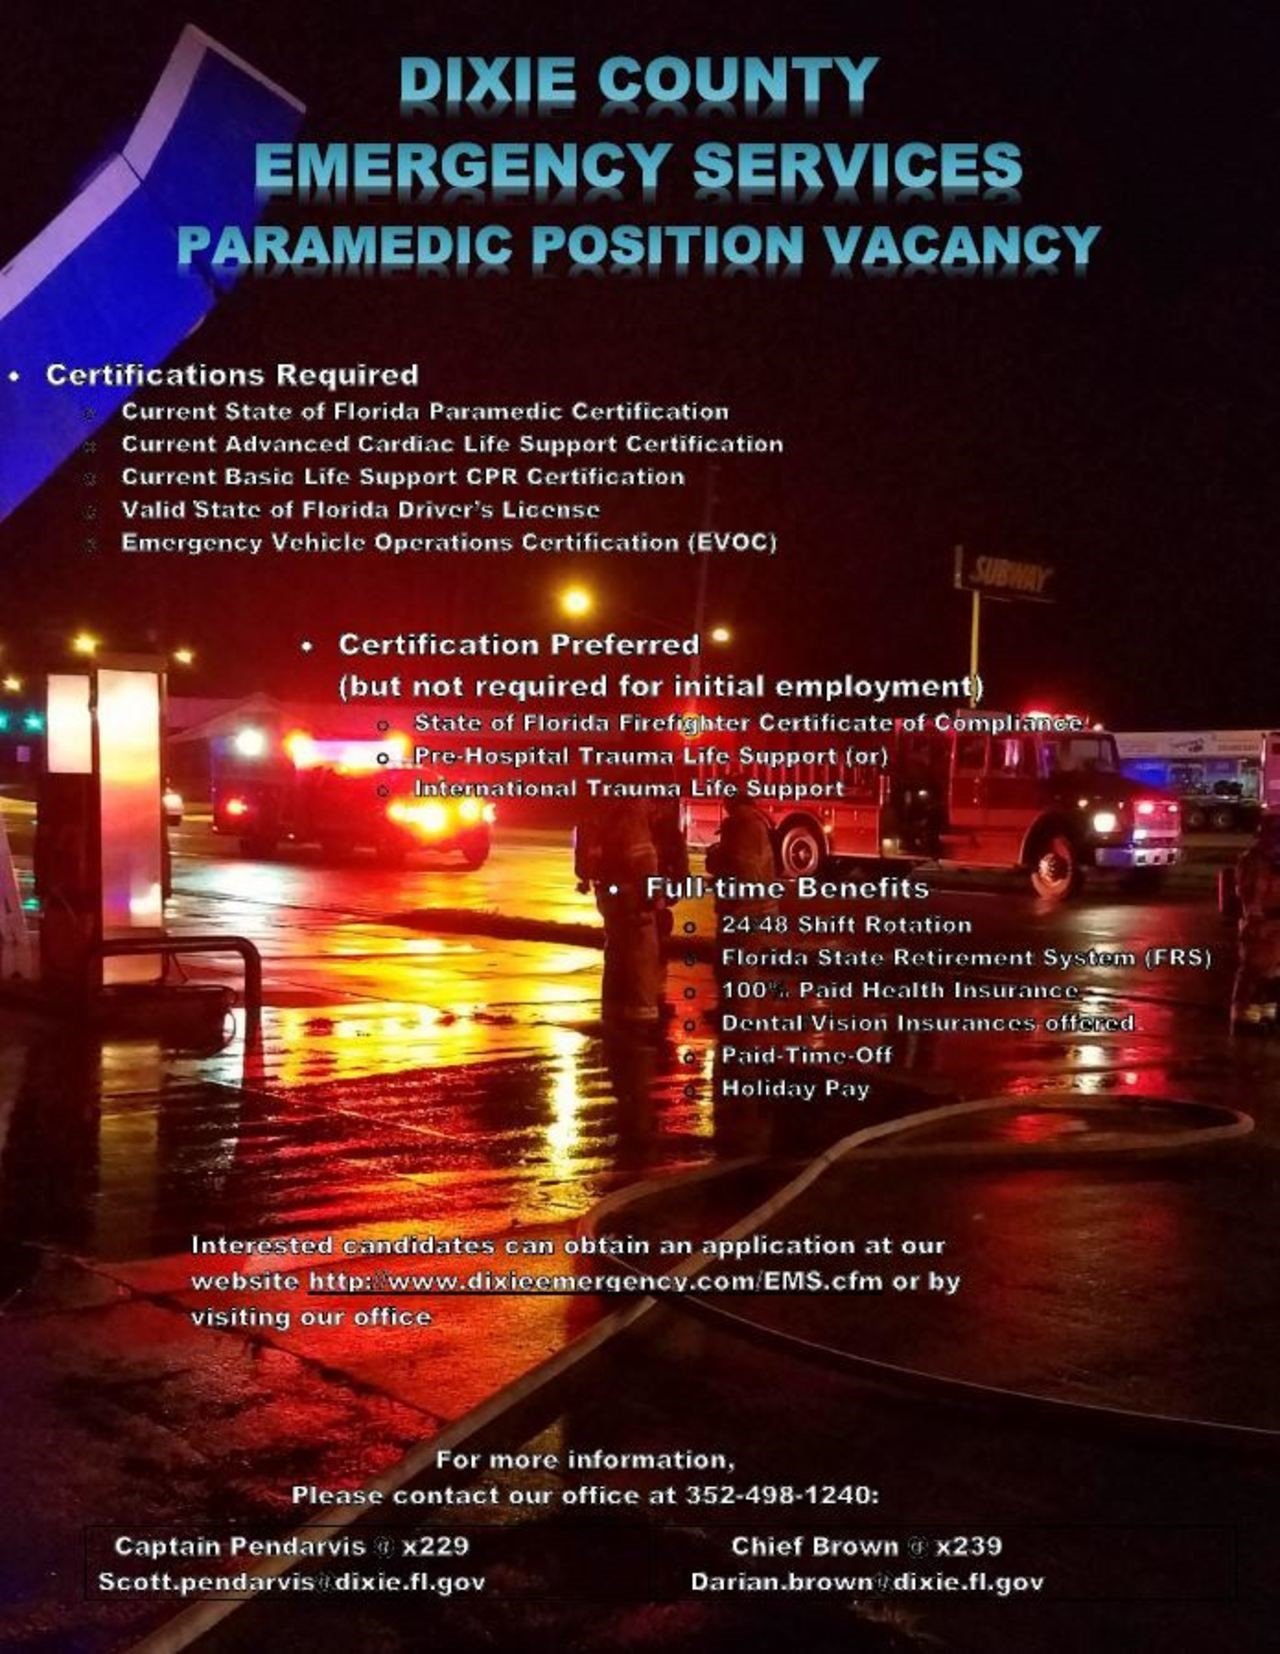 Dixie County Emergency Services Hiring Paramedic